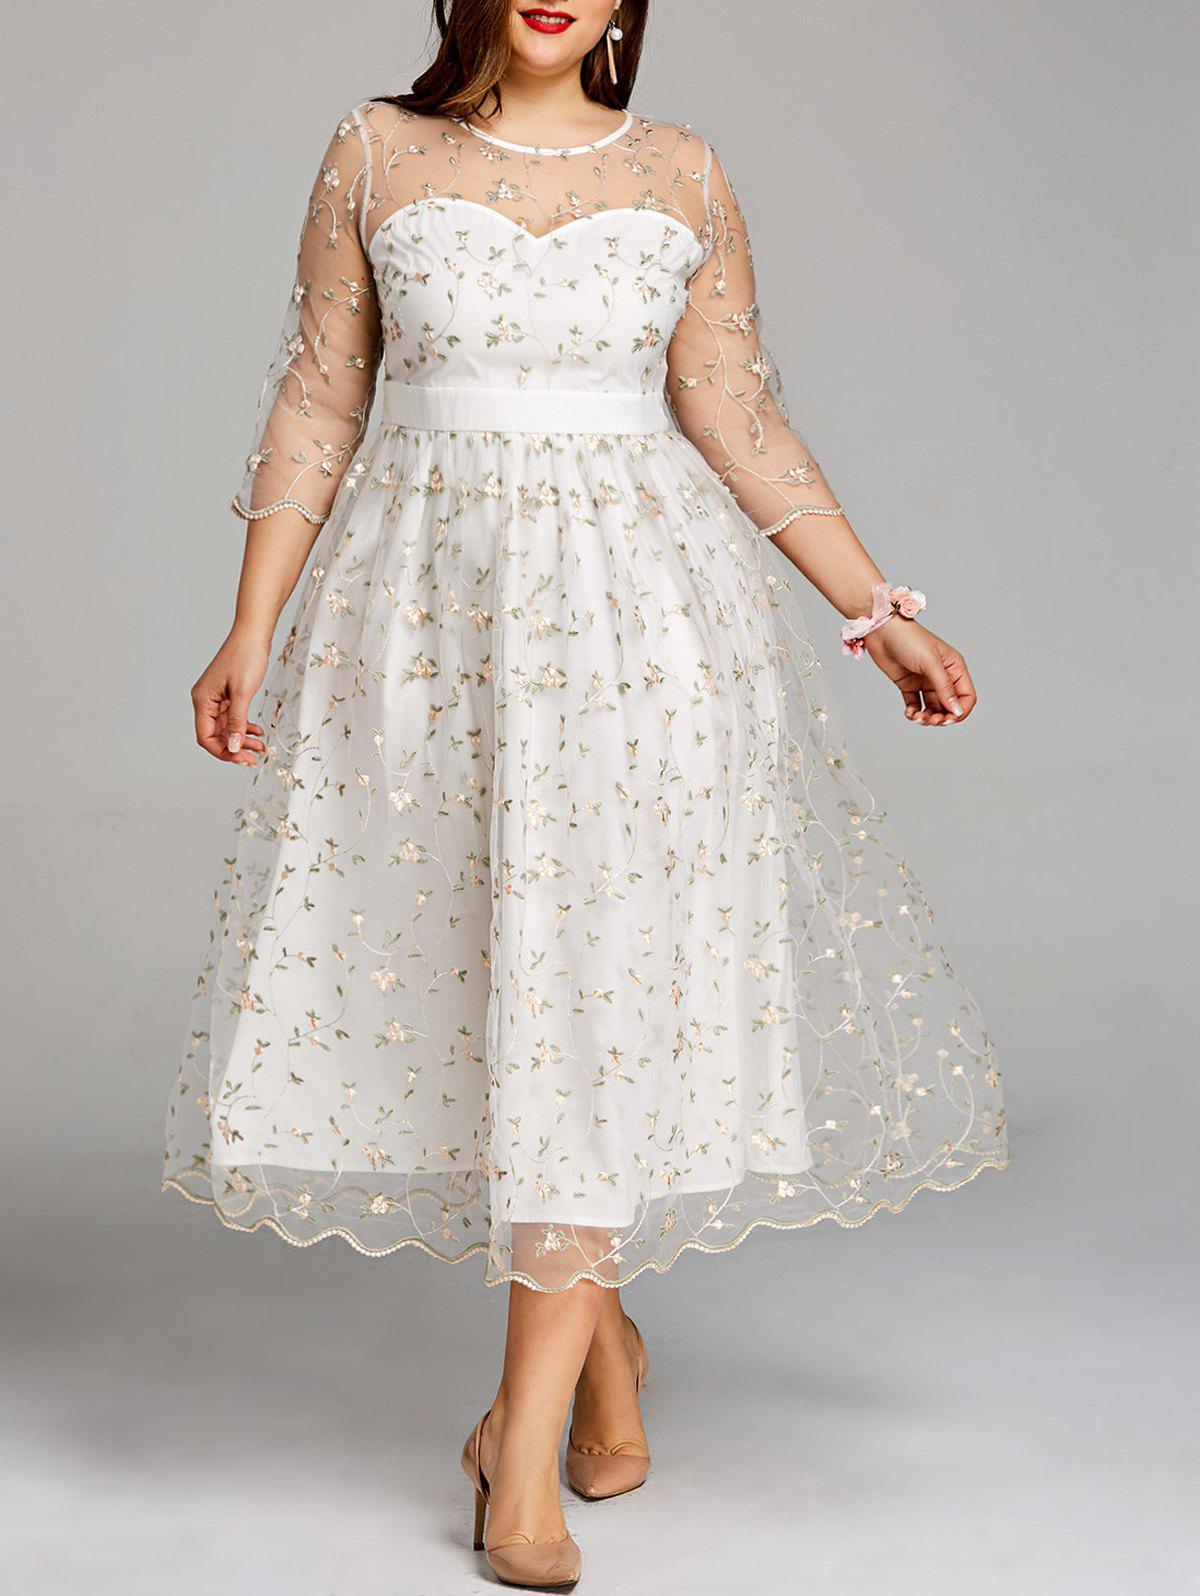 Plus Size Sheer Embroidery Tiny Floral Tulle Dress tiny floral chiffon plus size slip handkerchief dress